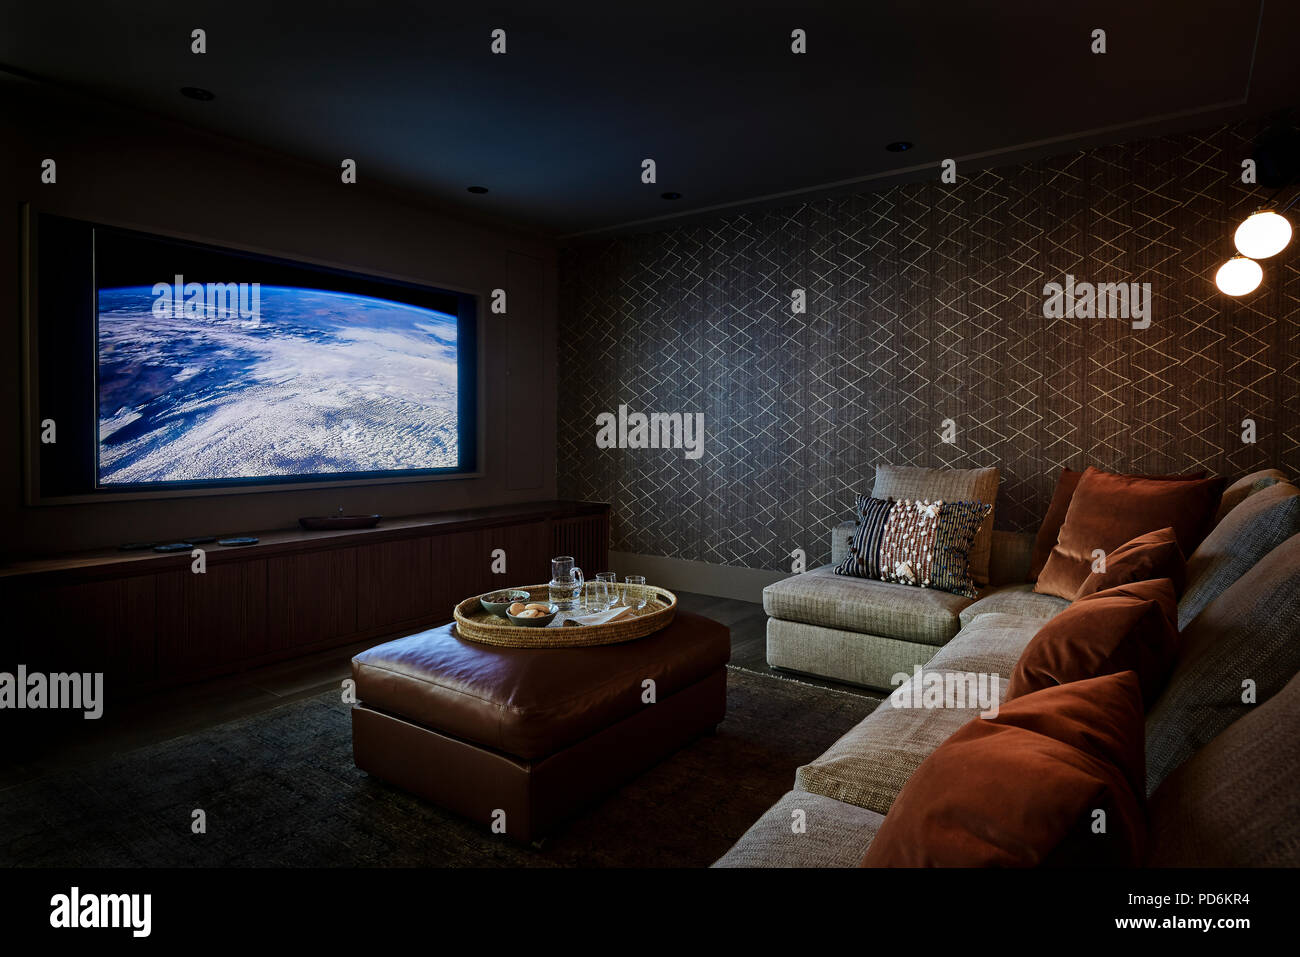 Large screen in home cinema with velvet cushions on corner seating - Stock Image